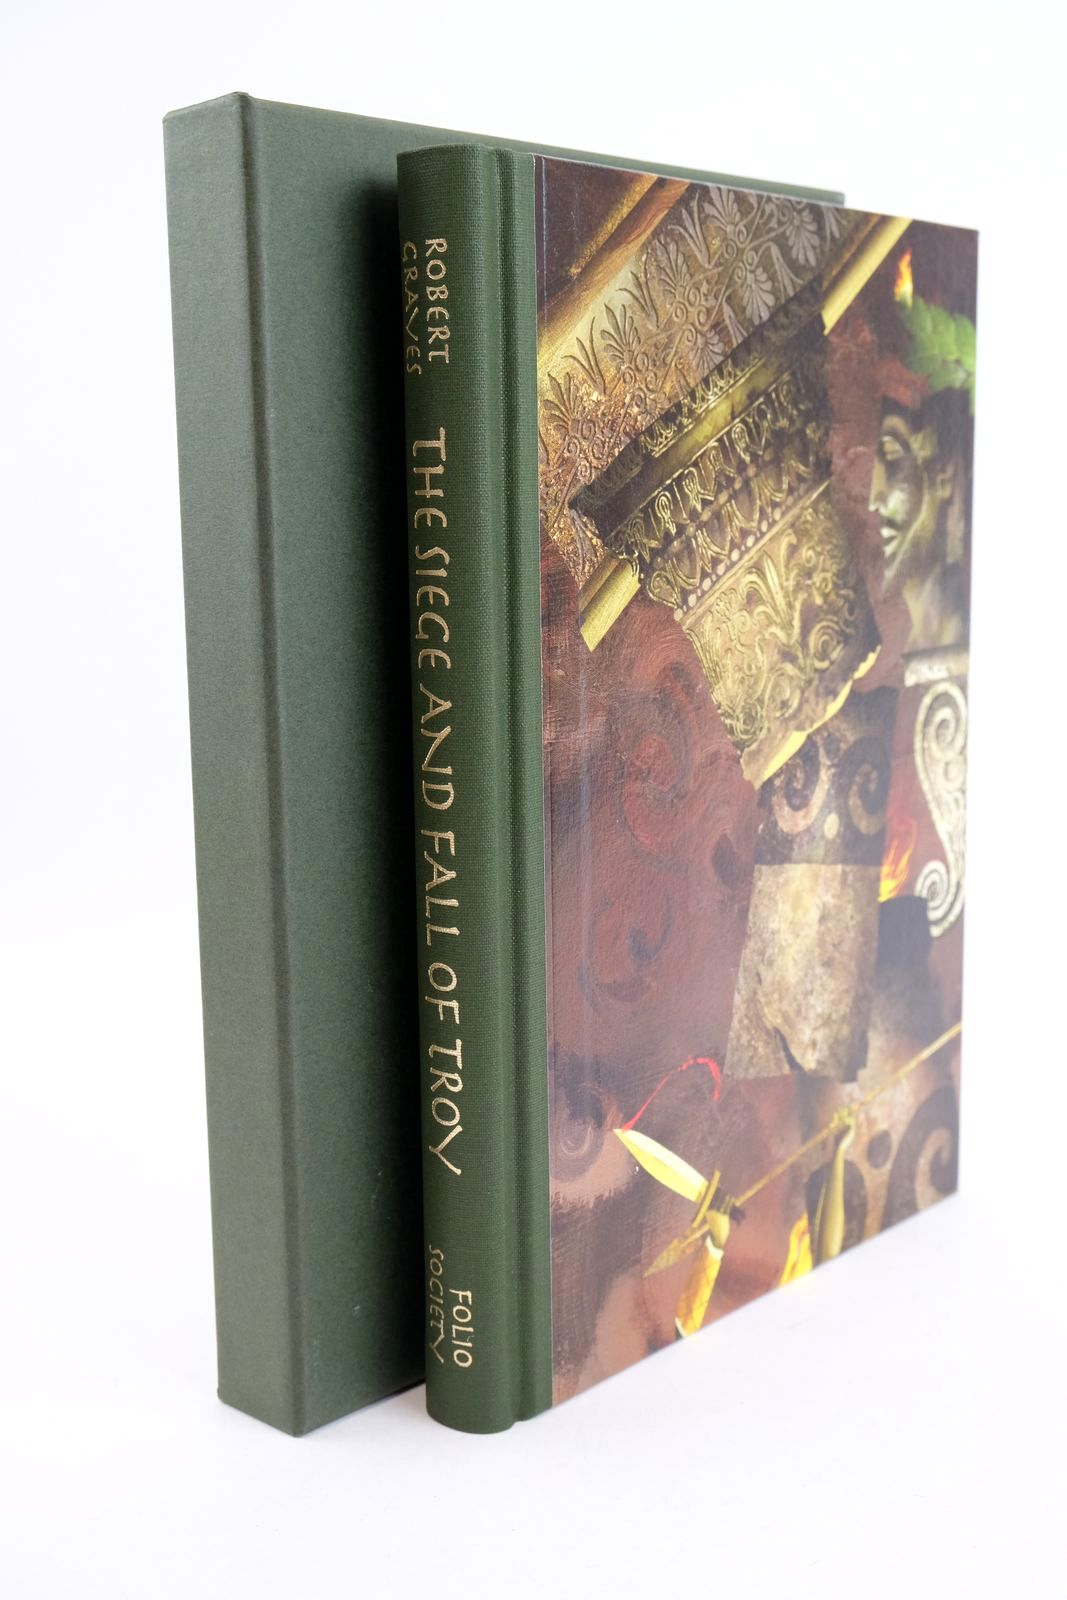 Photo of THE SIEGE AND FALL OF TROY written by Graves, Robert illustrated by Baker, Grahame published by Folio Society (STOCK CODE: 1318942)  for sale by Stella & Rose's Books